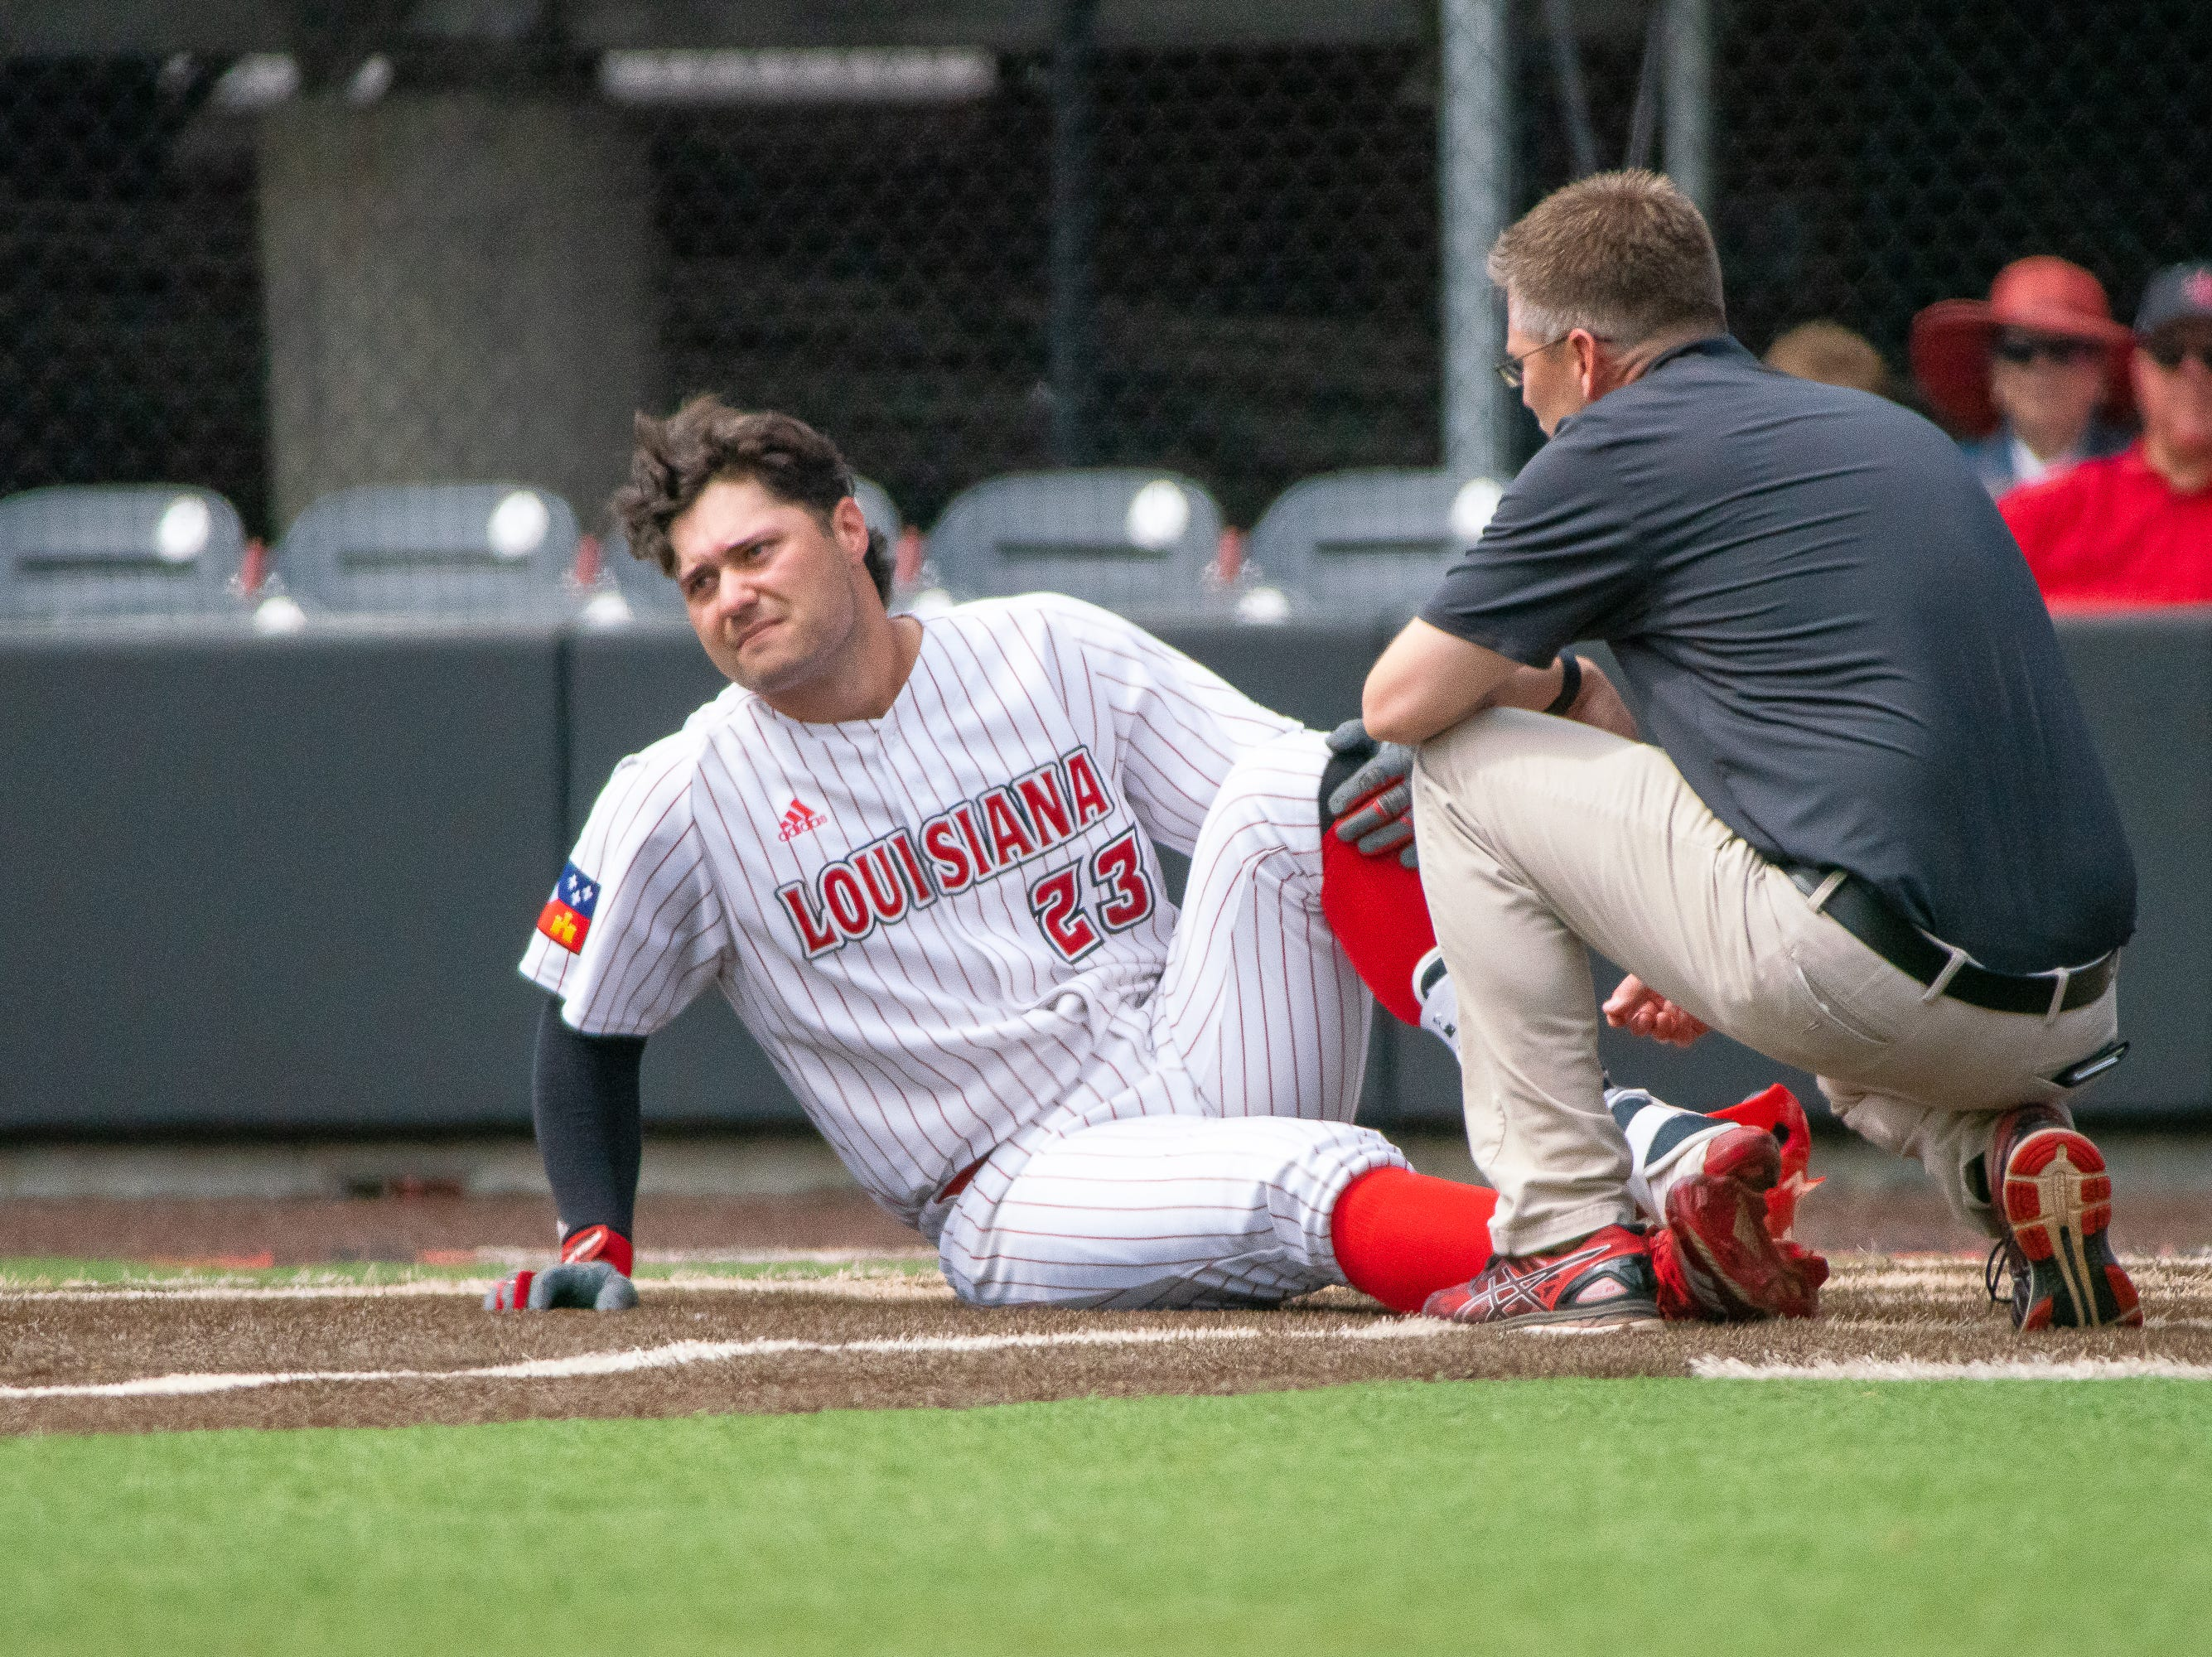 UL's Handsome Monica lays down hurt after getting hit by the pitch as the Ragin' Cajuns take on the Loyola Marymount Lions at M.L. Tigue Moore Field on March 10, 2019.